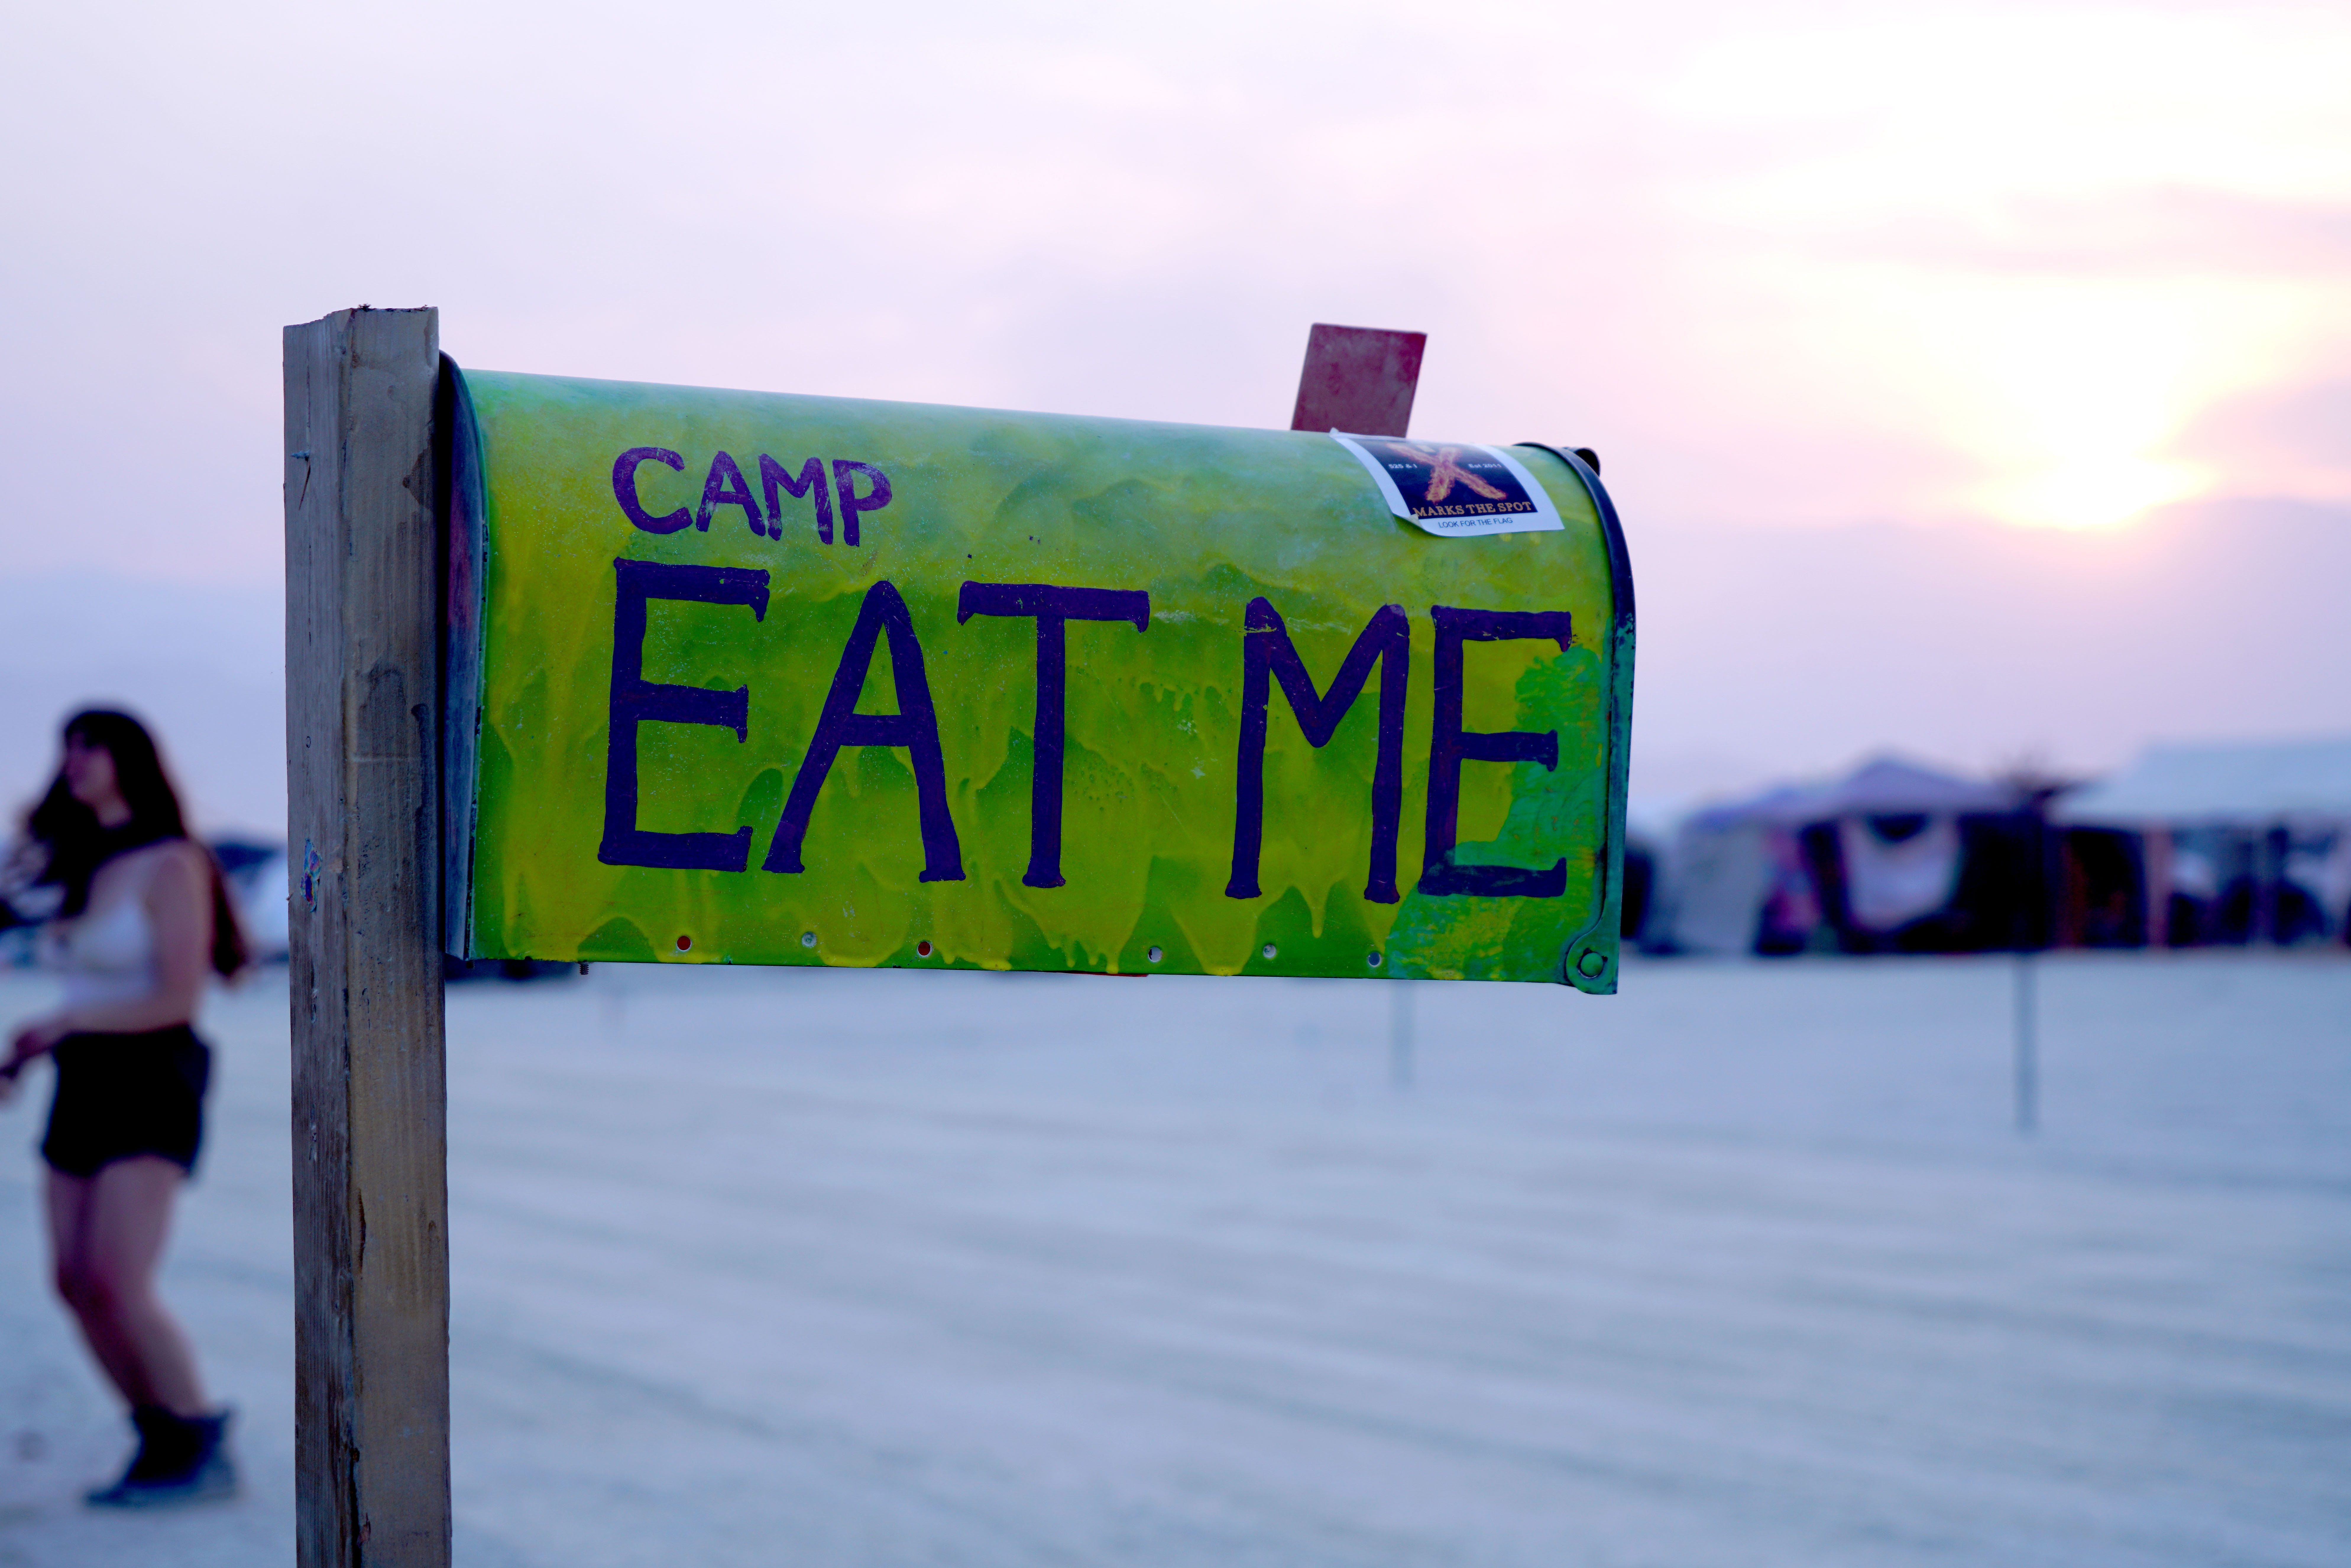 """Attendees at Burning Man give their camps whimsical names. Camp Eat Me specializes in """"awful"""" food, such as waffles topped with dried bugs."""